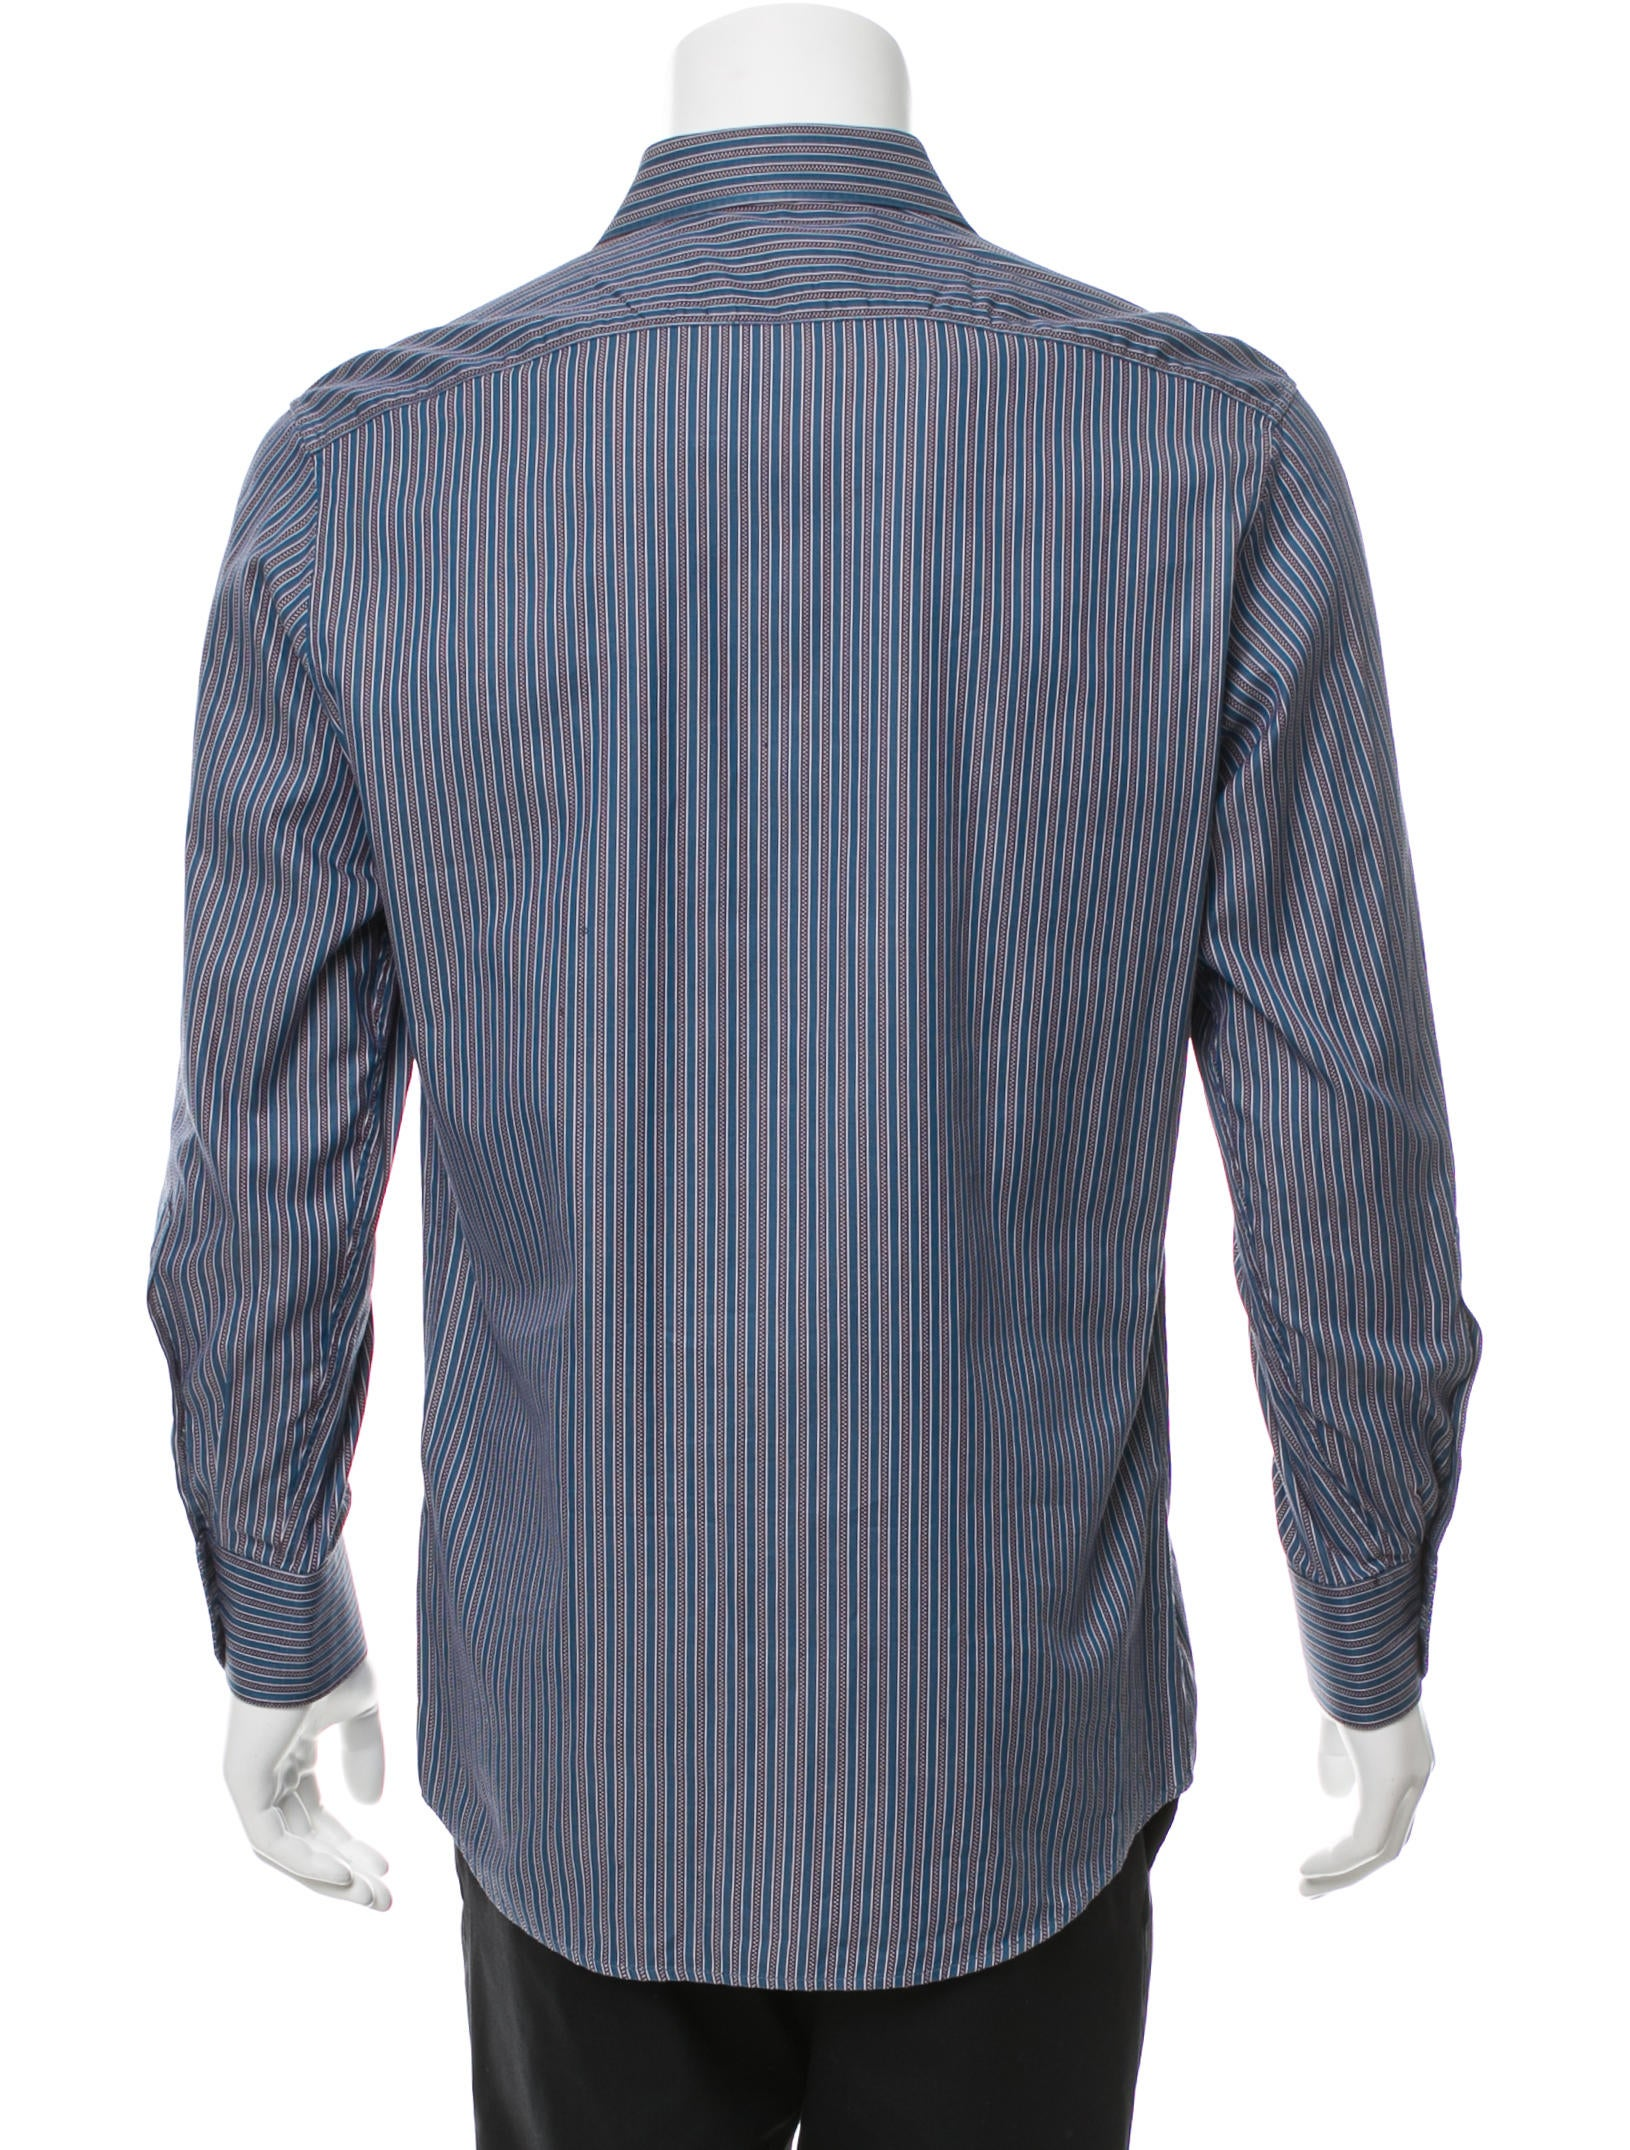 Gucci striped button up shirt clothing guc157689 the for Striped button up shirt mens